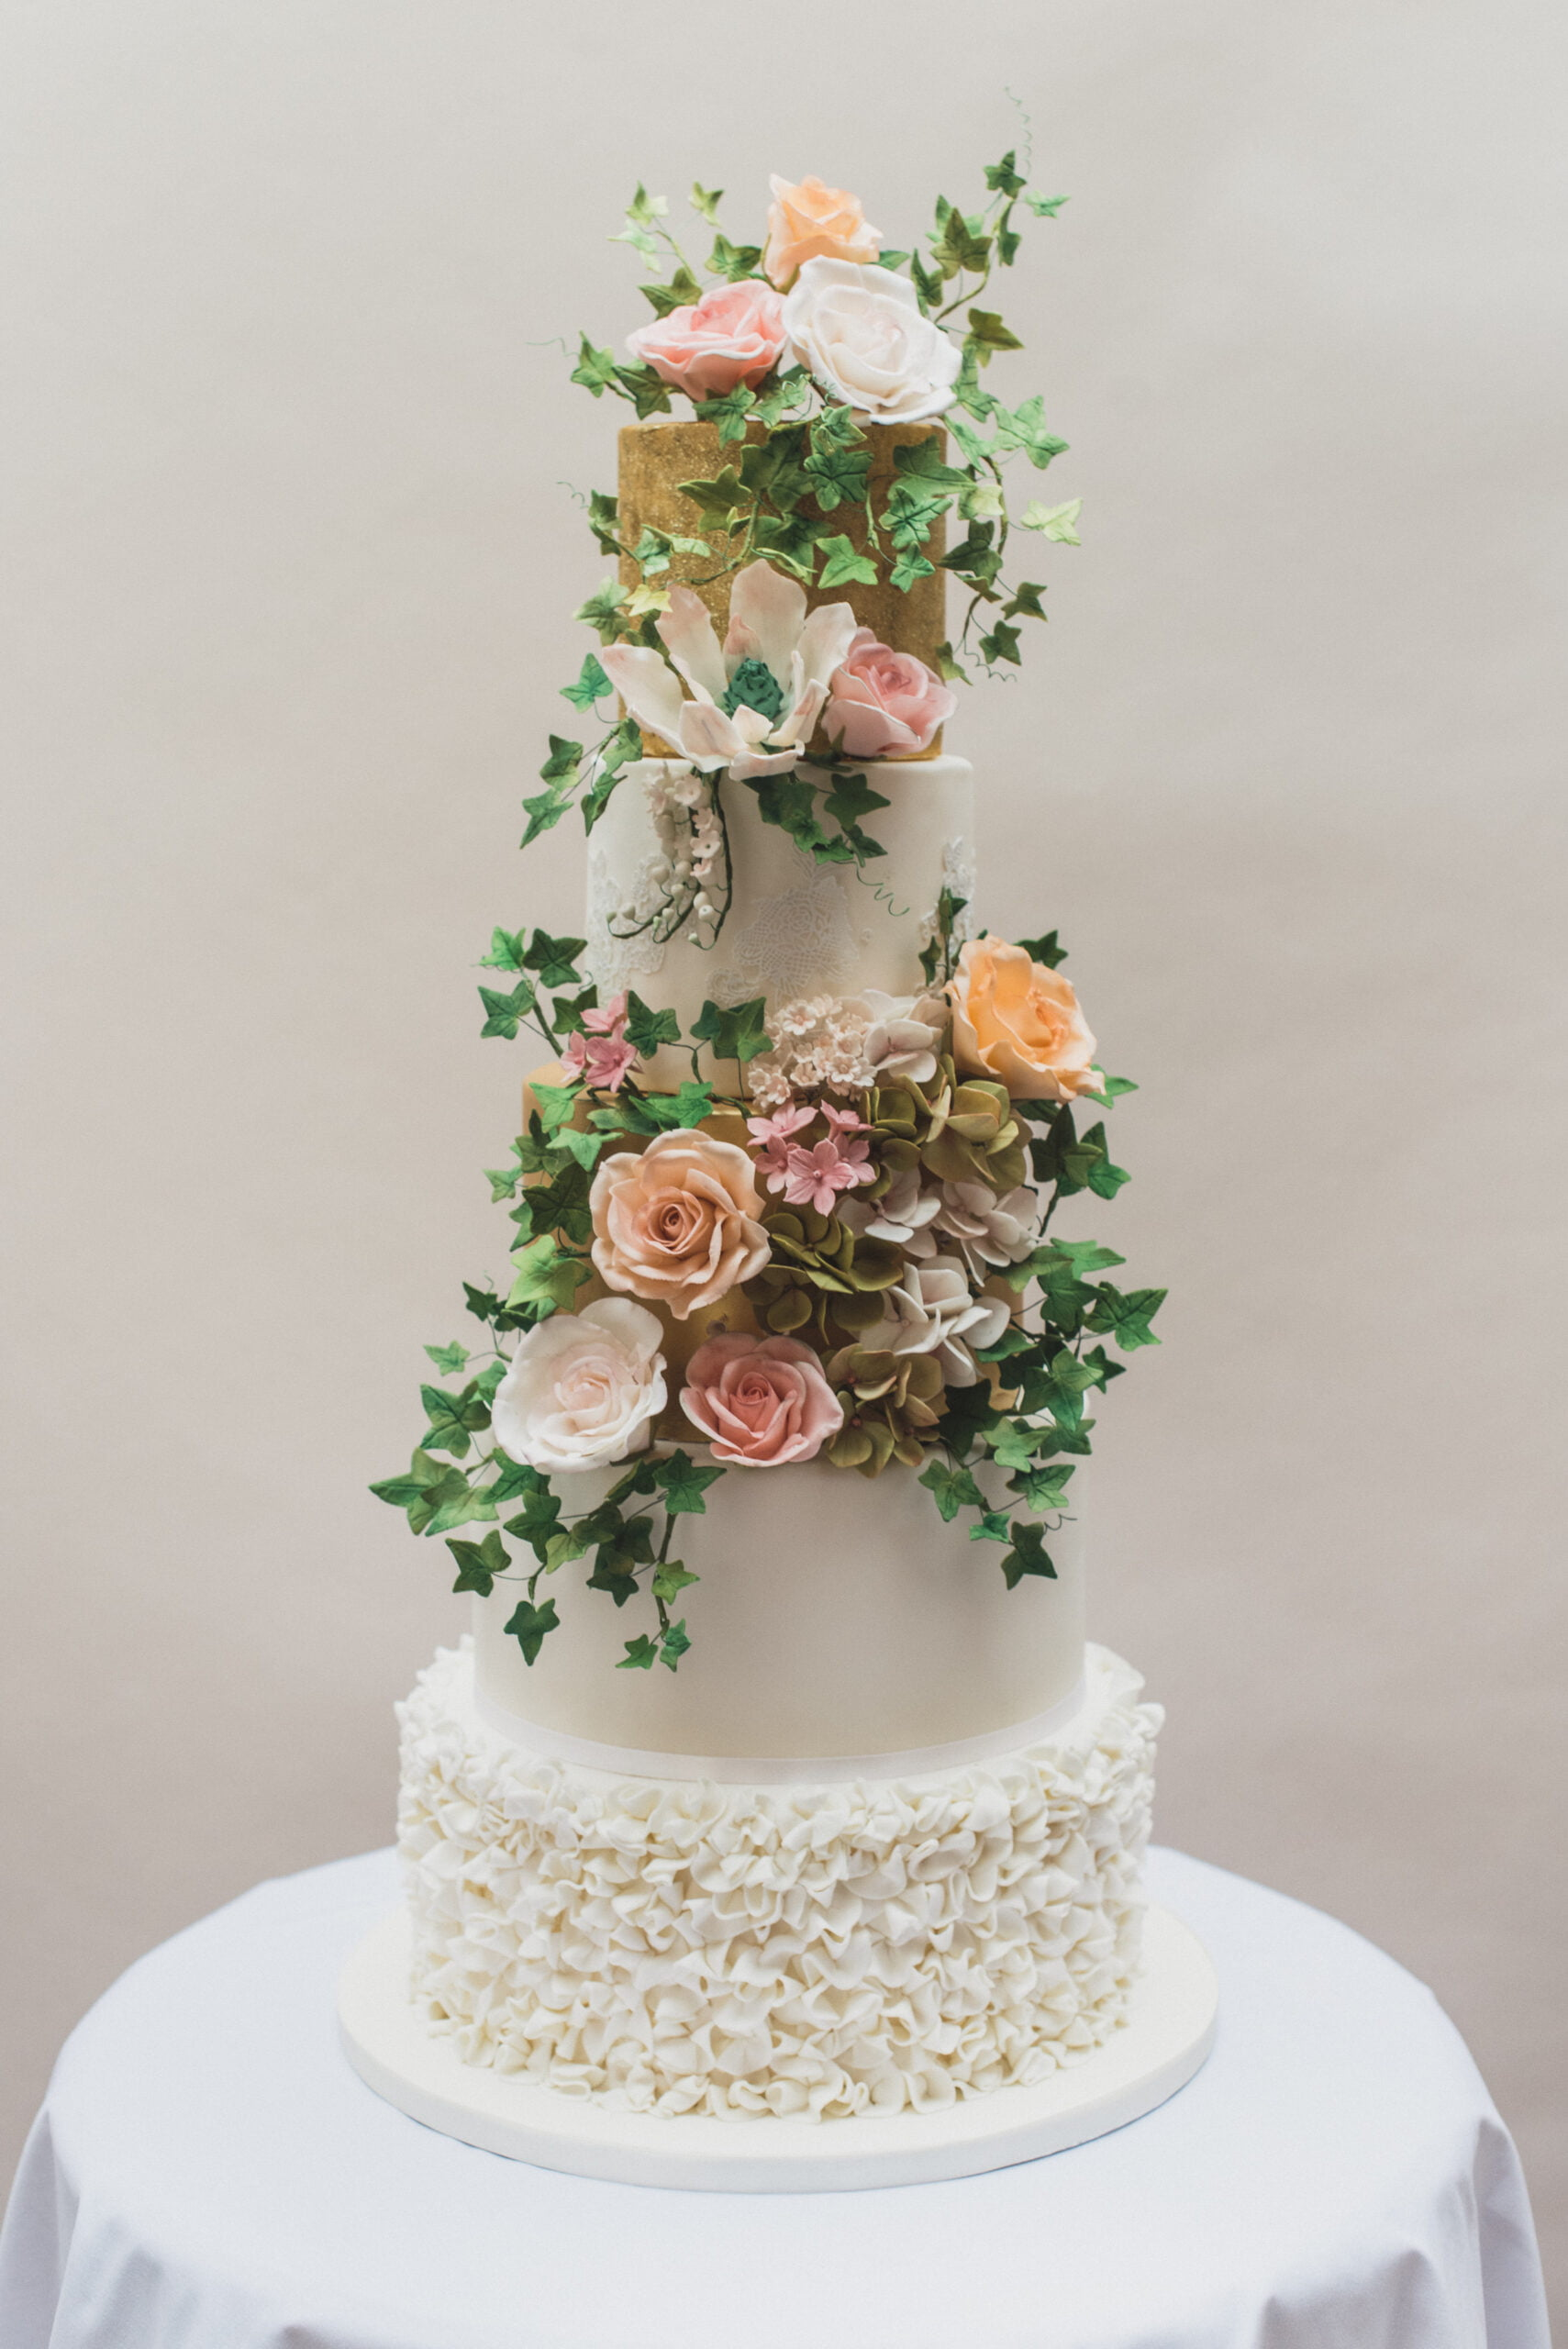 5 tier shows topping wedding cake finished with gold paint, ivory handmade ruffles, handmade sumptuous pastel sugar flowers designed by Bluebell Kitchen